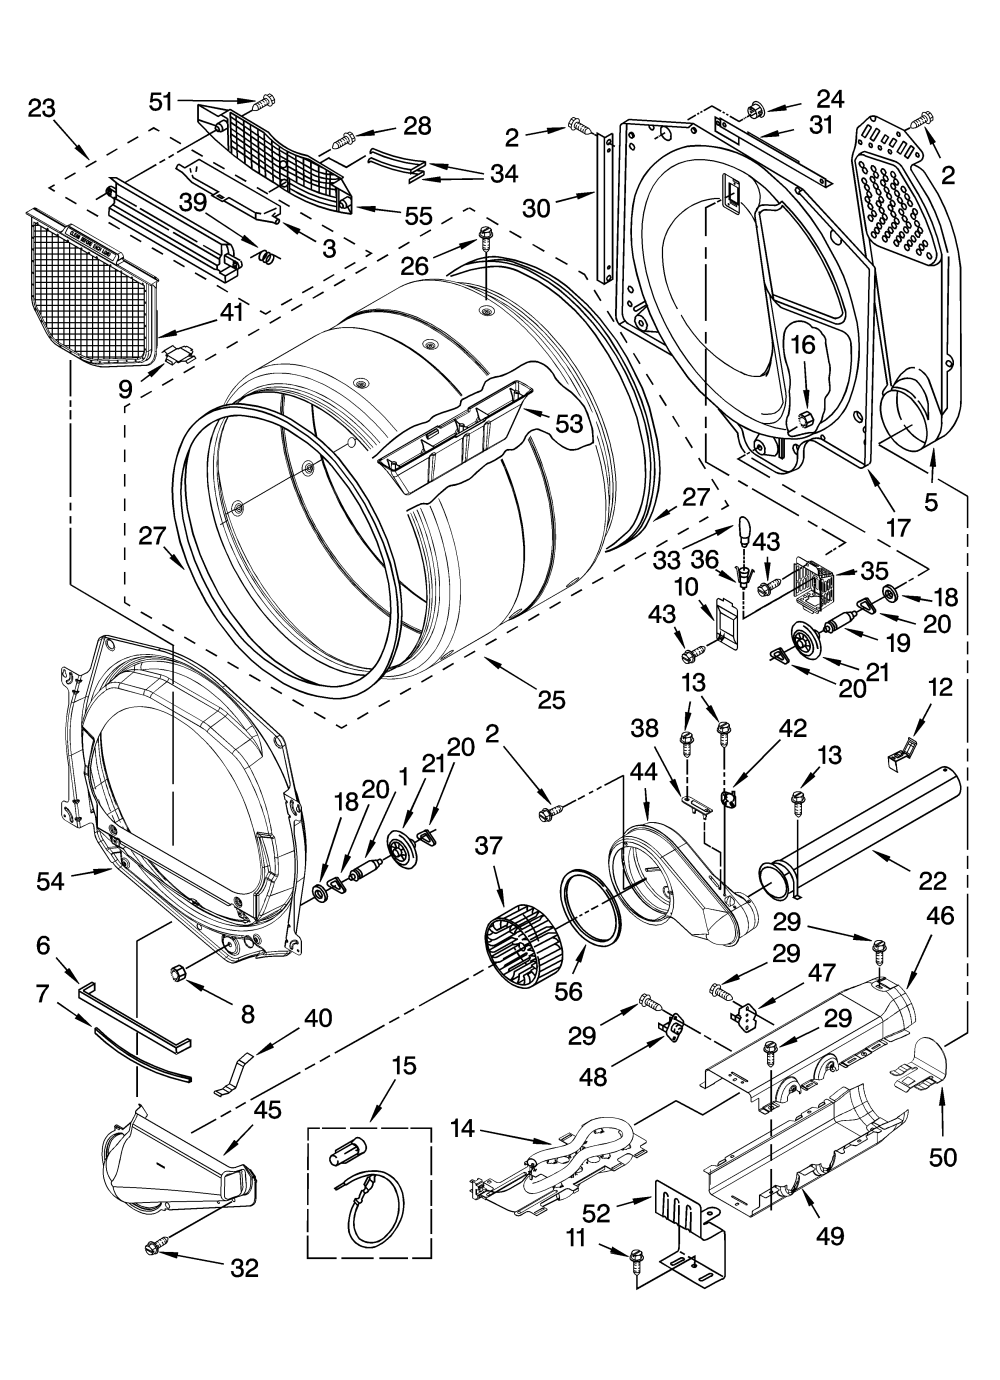 medium resolution of whirlpool model wed8300sw0 residential dryer genuine partsmaytag duet dryer wiring diagram 21